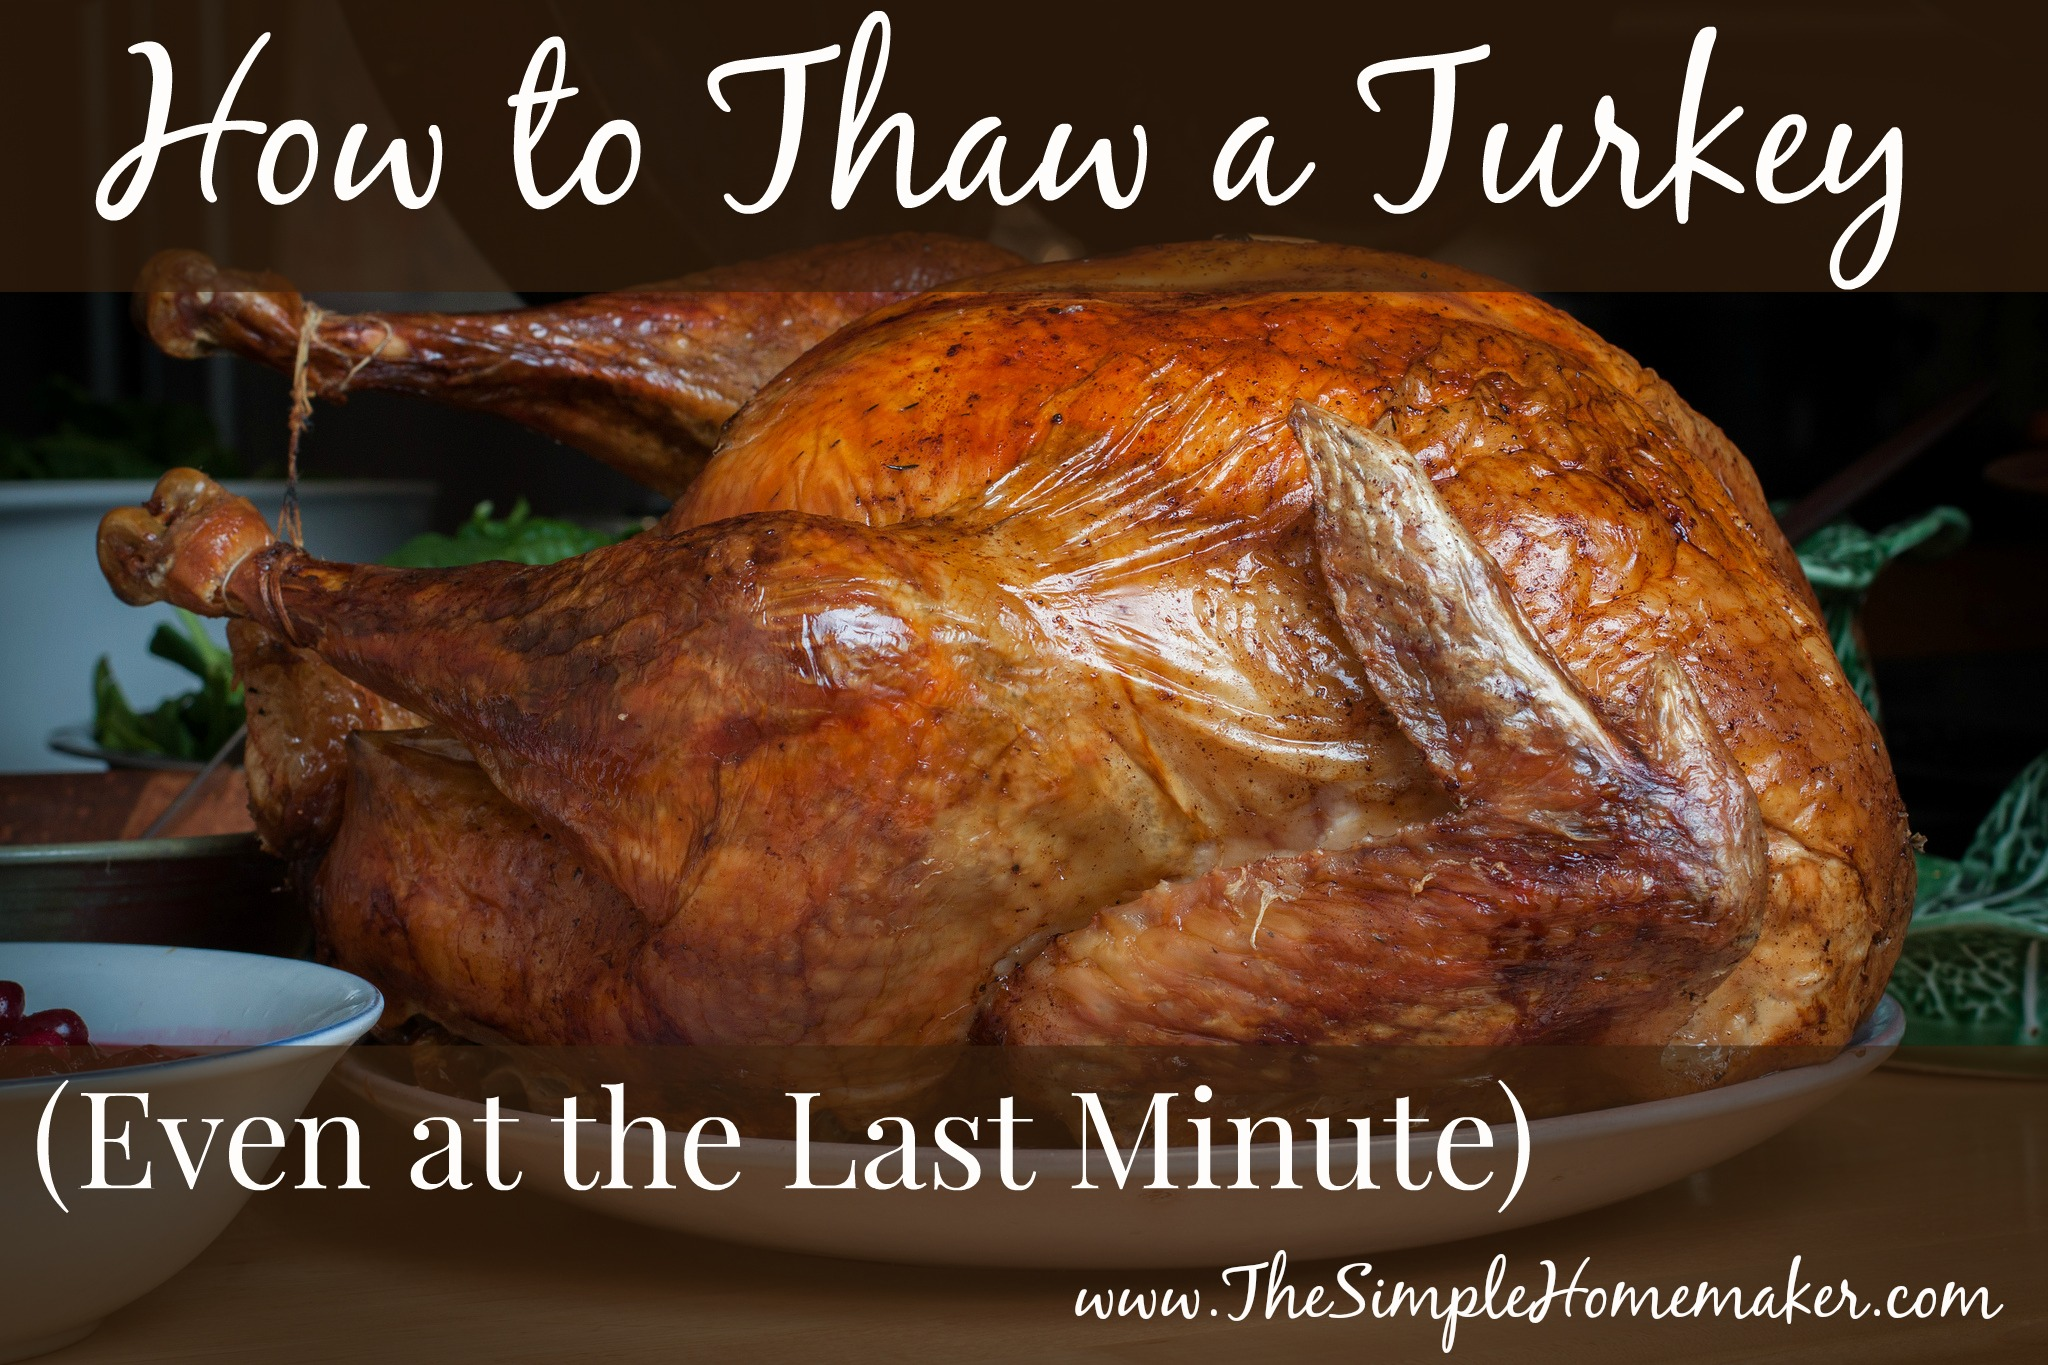 How To Thaw a Turkey (Even at the Last Minute)